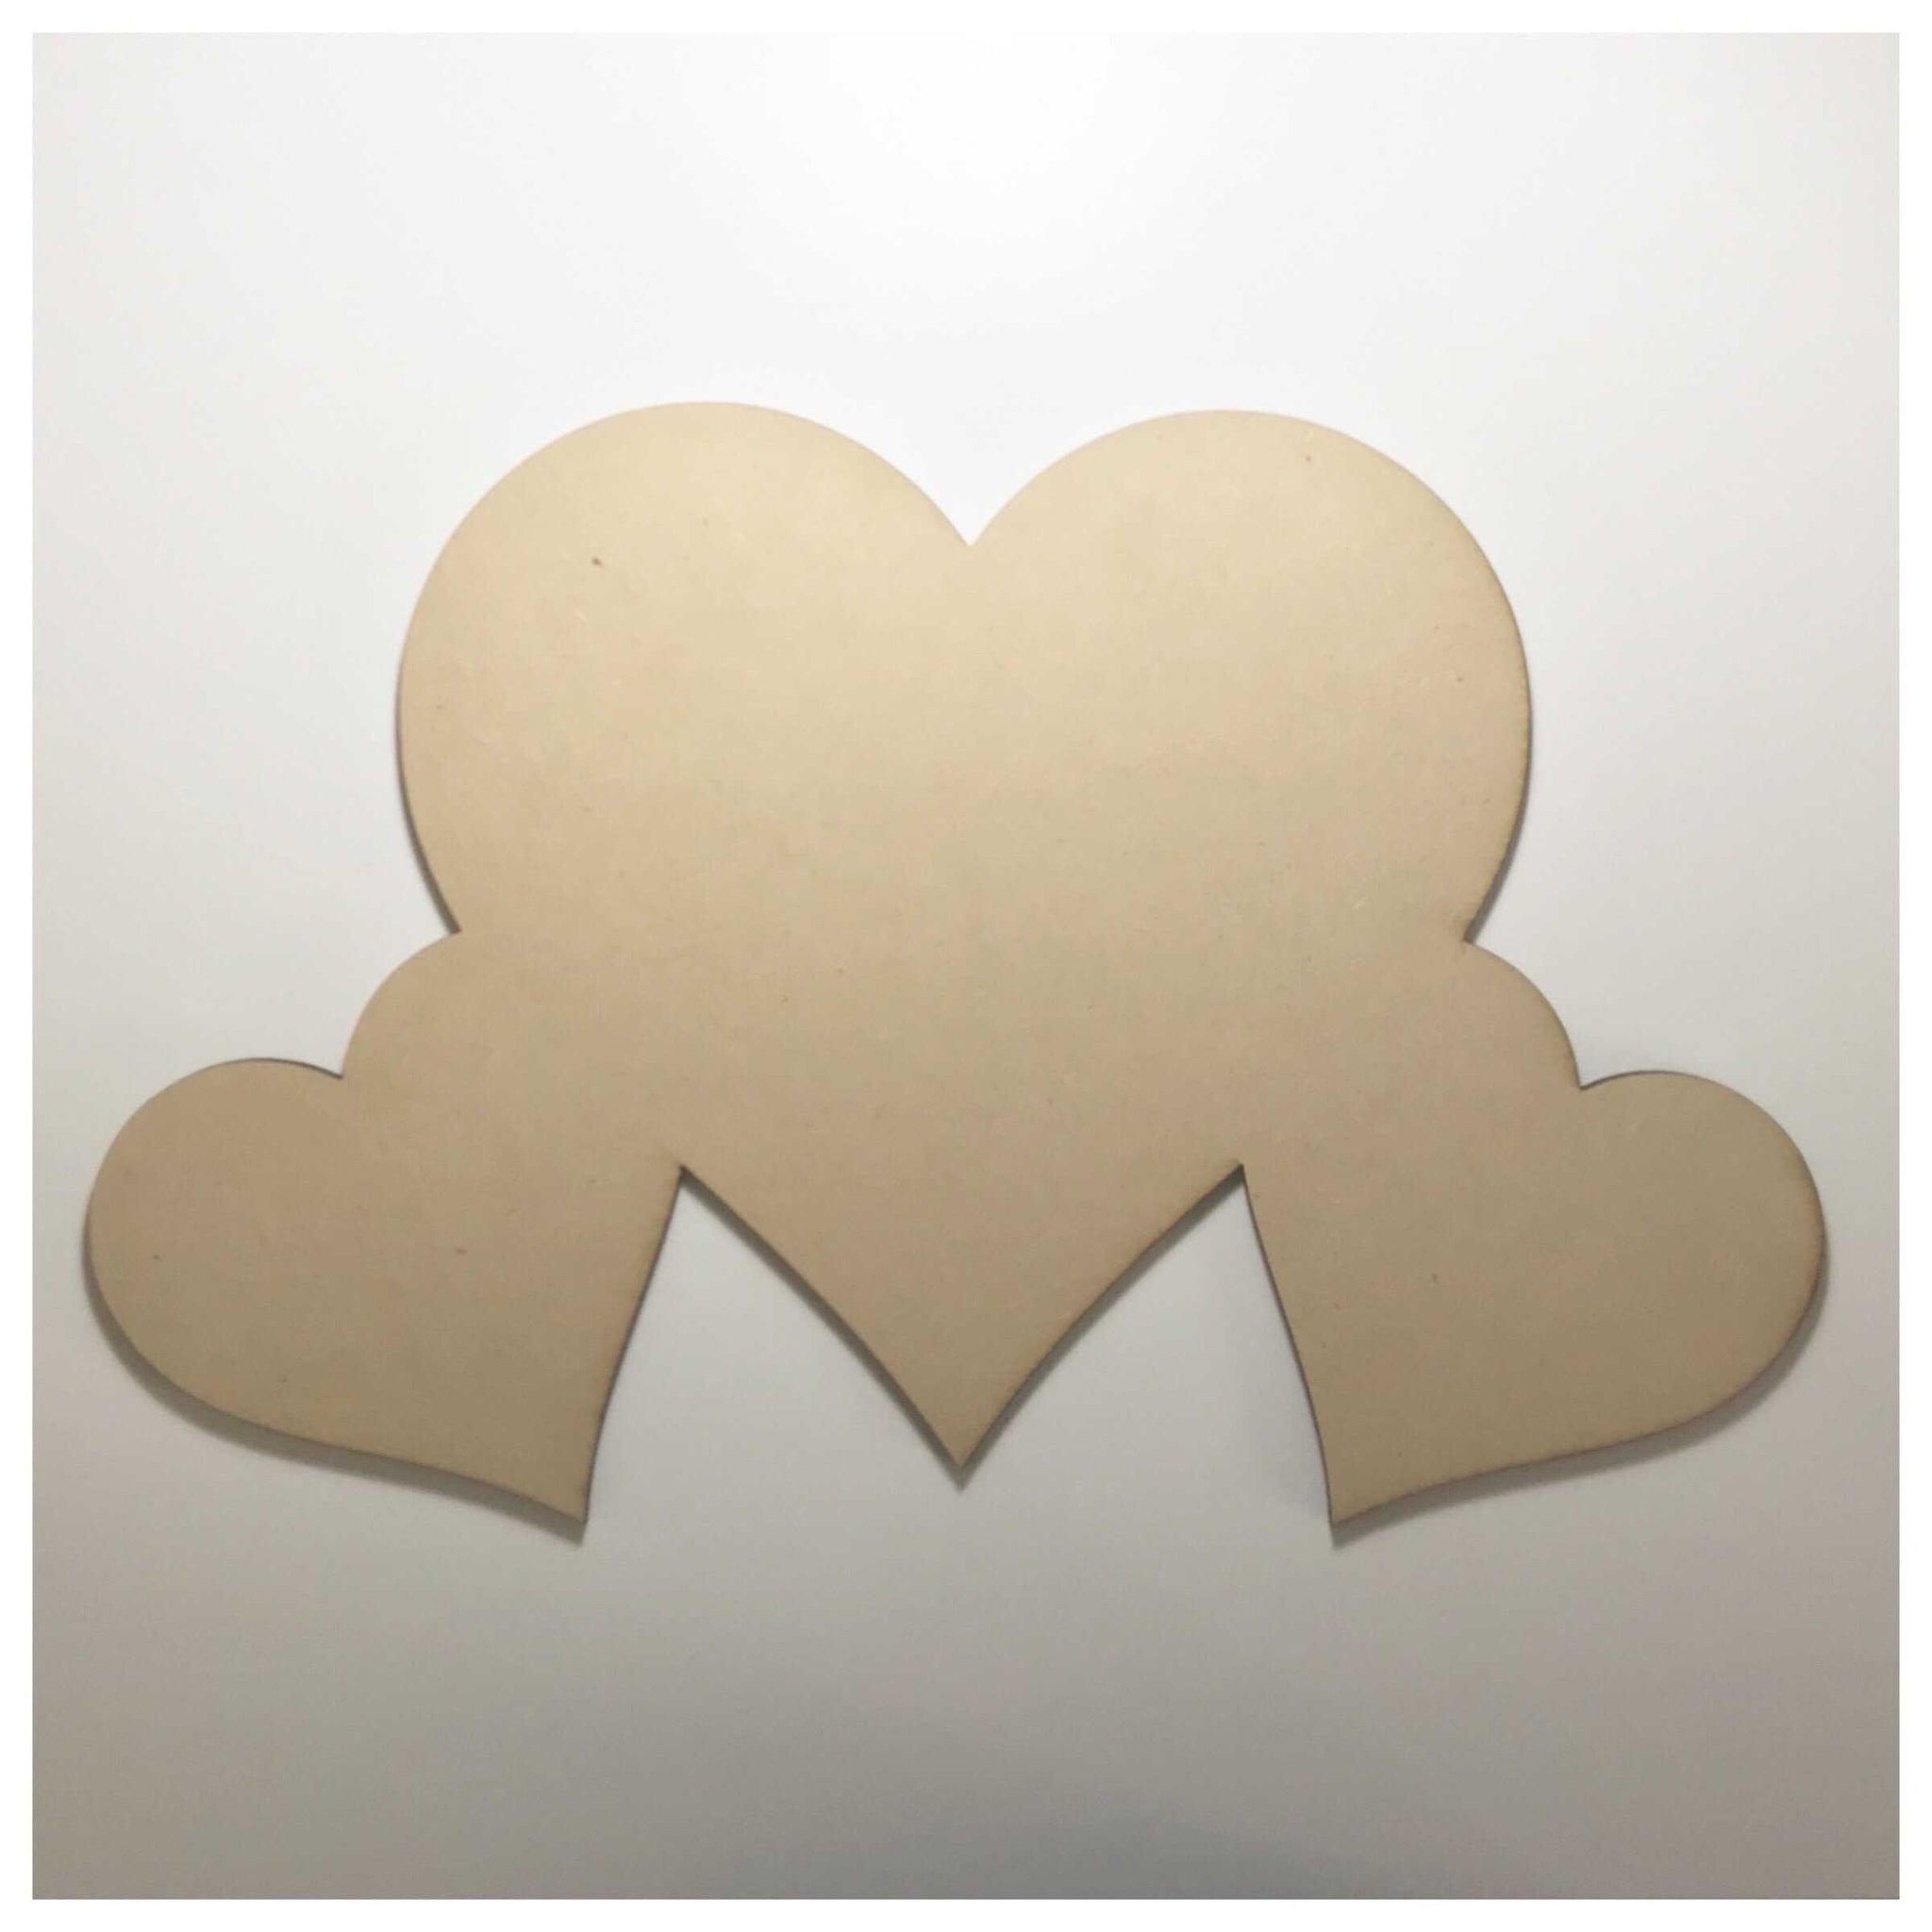 Heart Hearts Three Love Large Raw MDF DIY - The Renmy Store